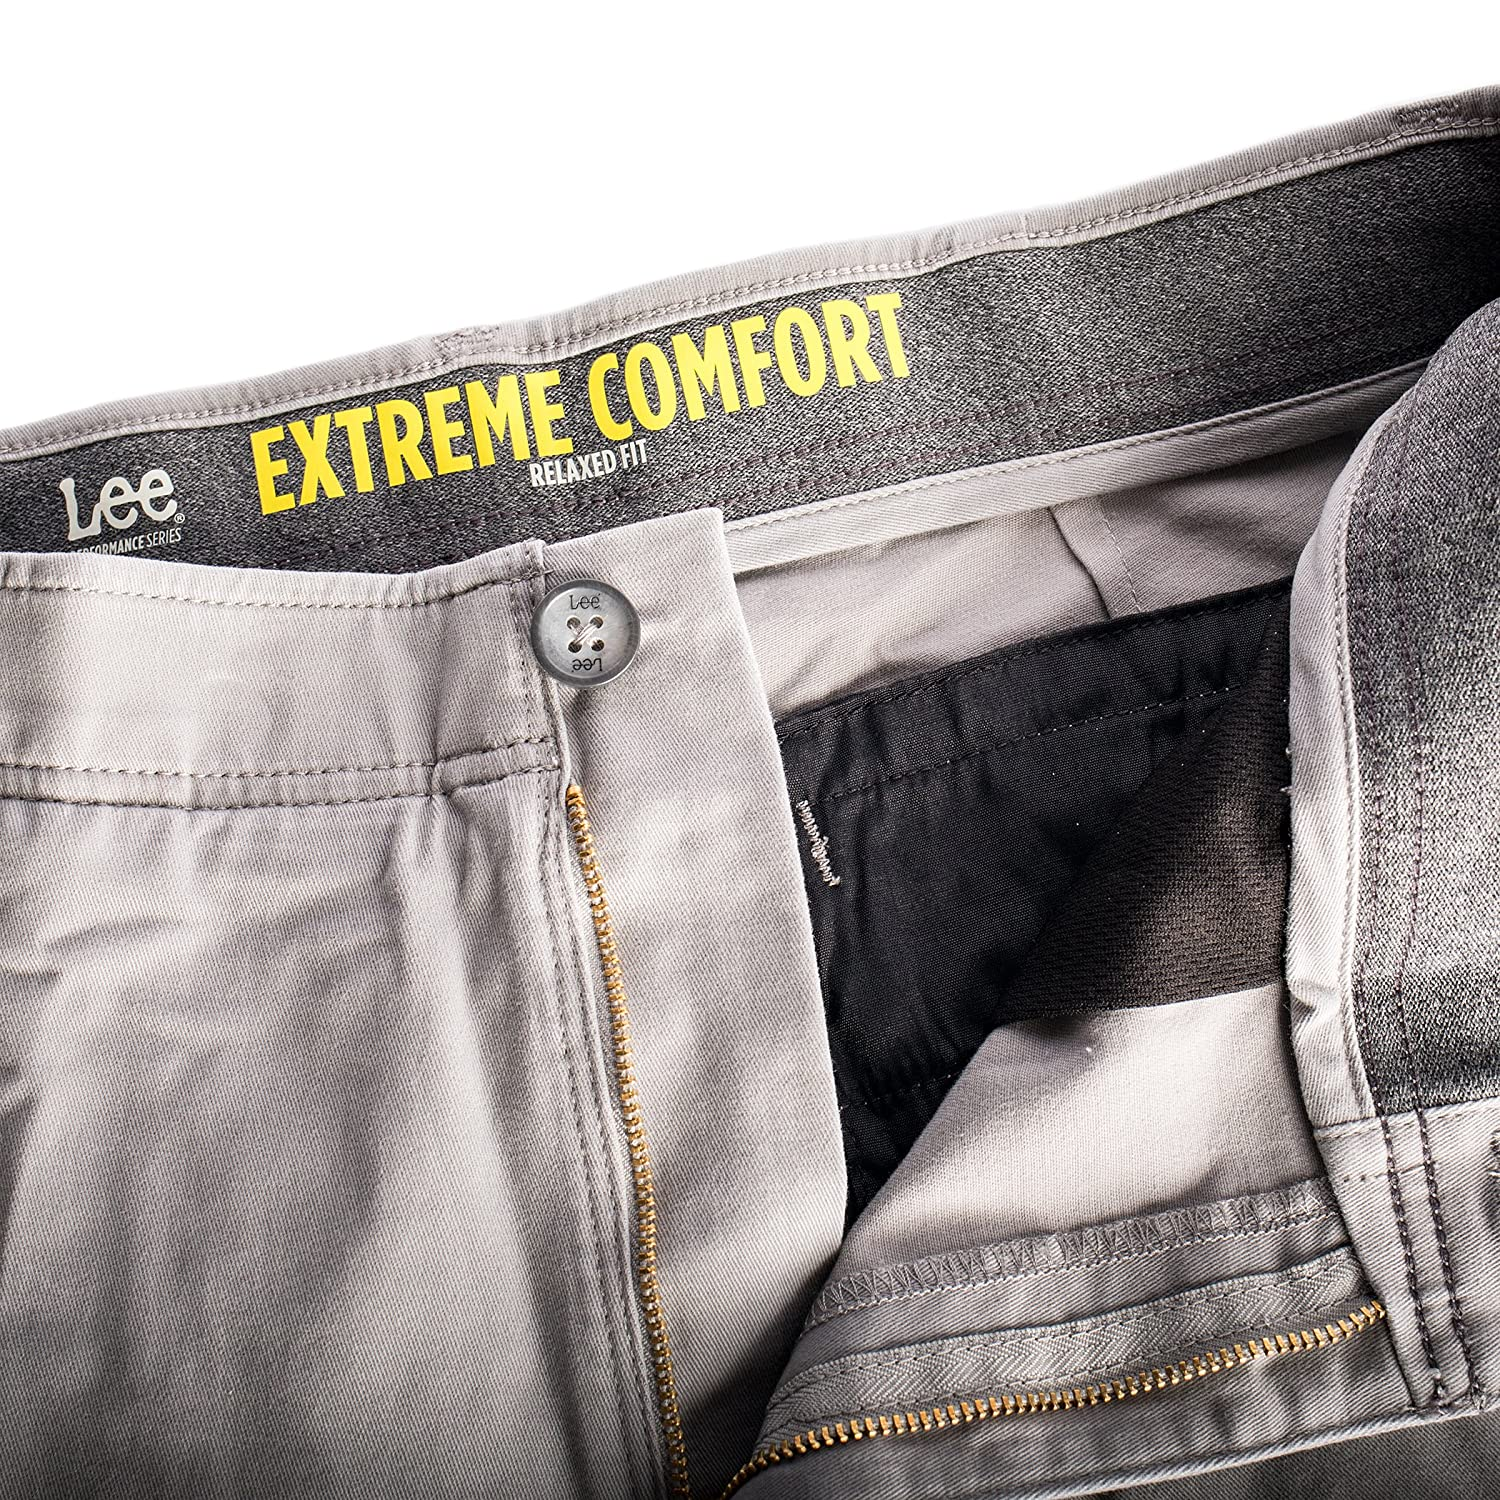 store comfort pant lee series at amazon clothing comforter men khaki extreme s performance dp waistband